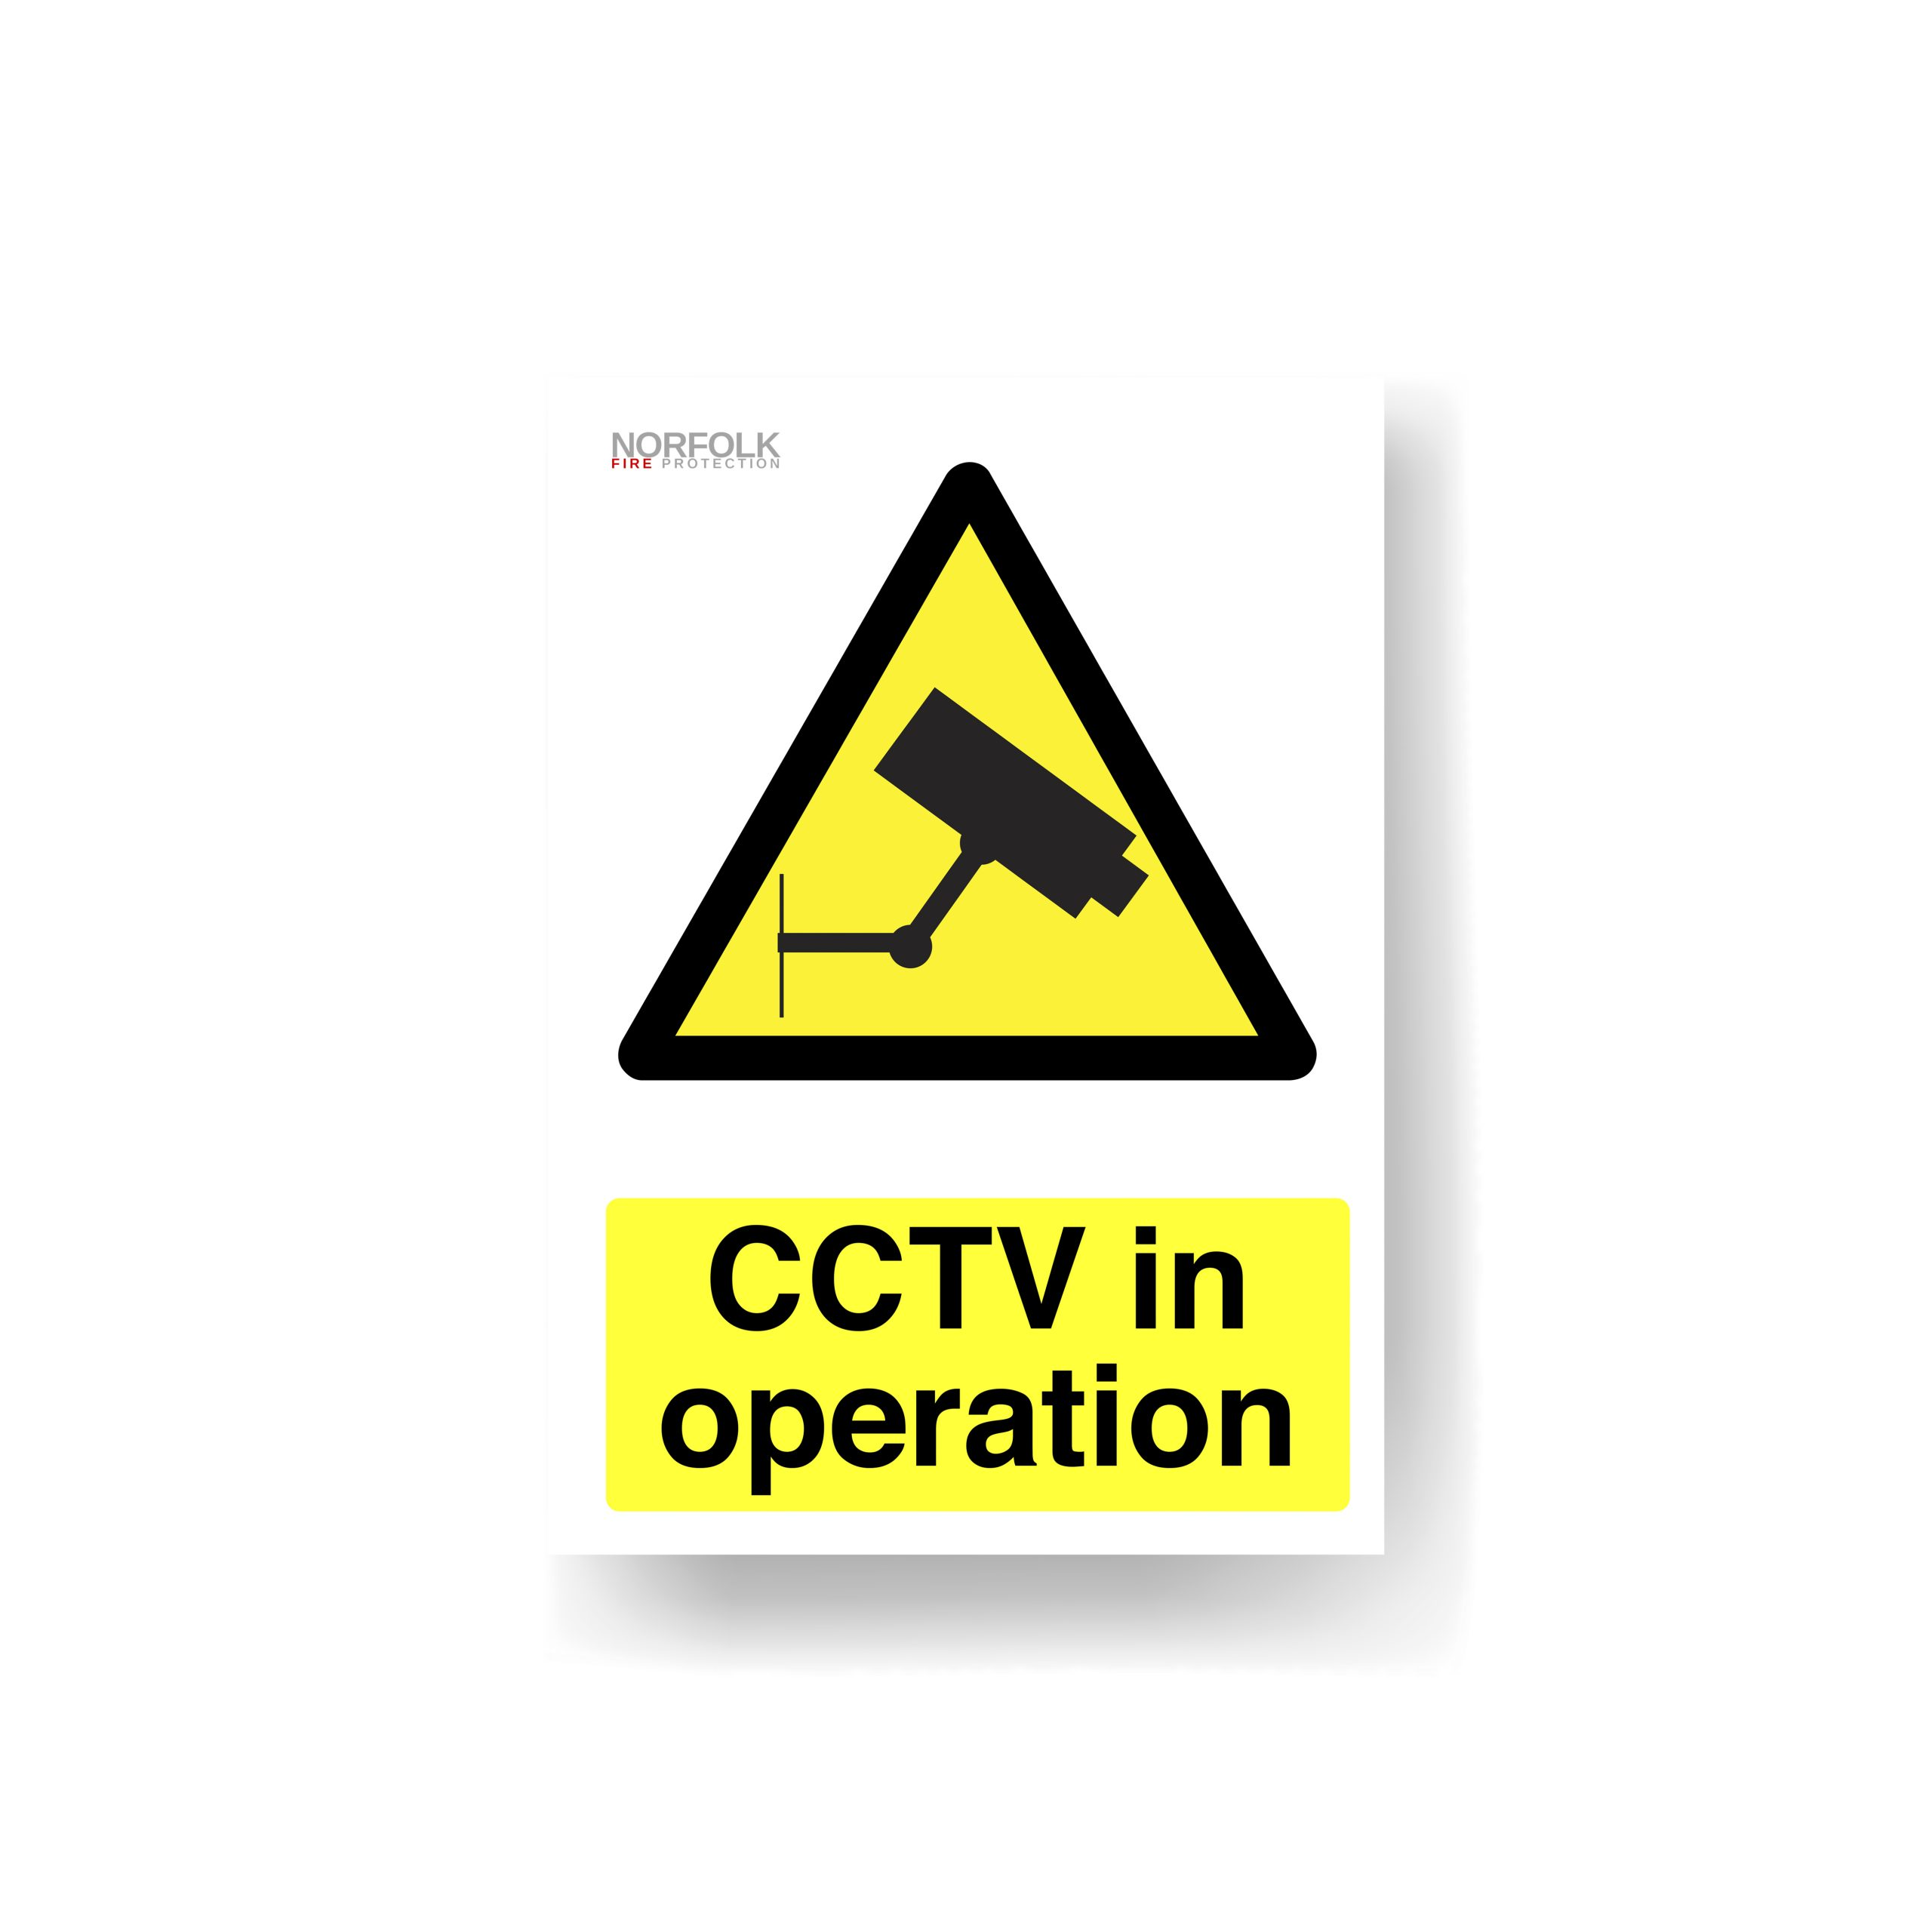 CCTV Signage Safety Survey